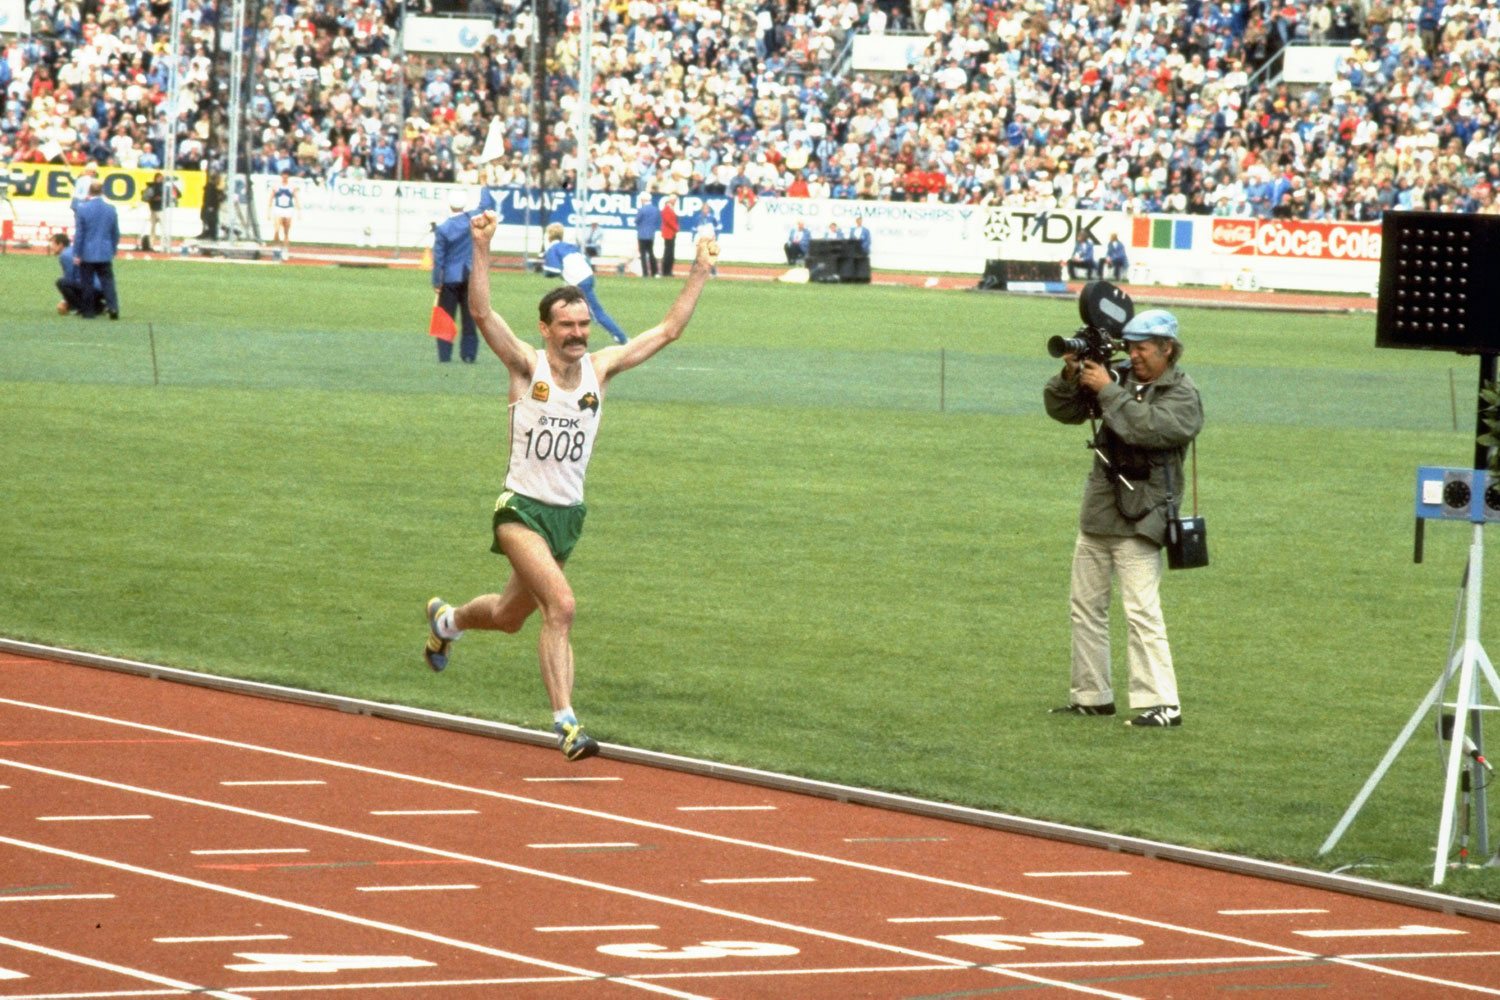 Rob de Castella celebrates as he crosses the finish line to win the marathon event during the World Championships at the Olympic Stadium in Helsinki, Finland.